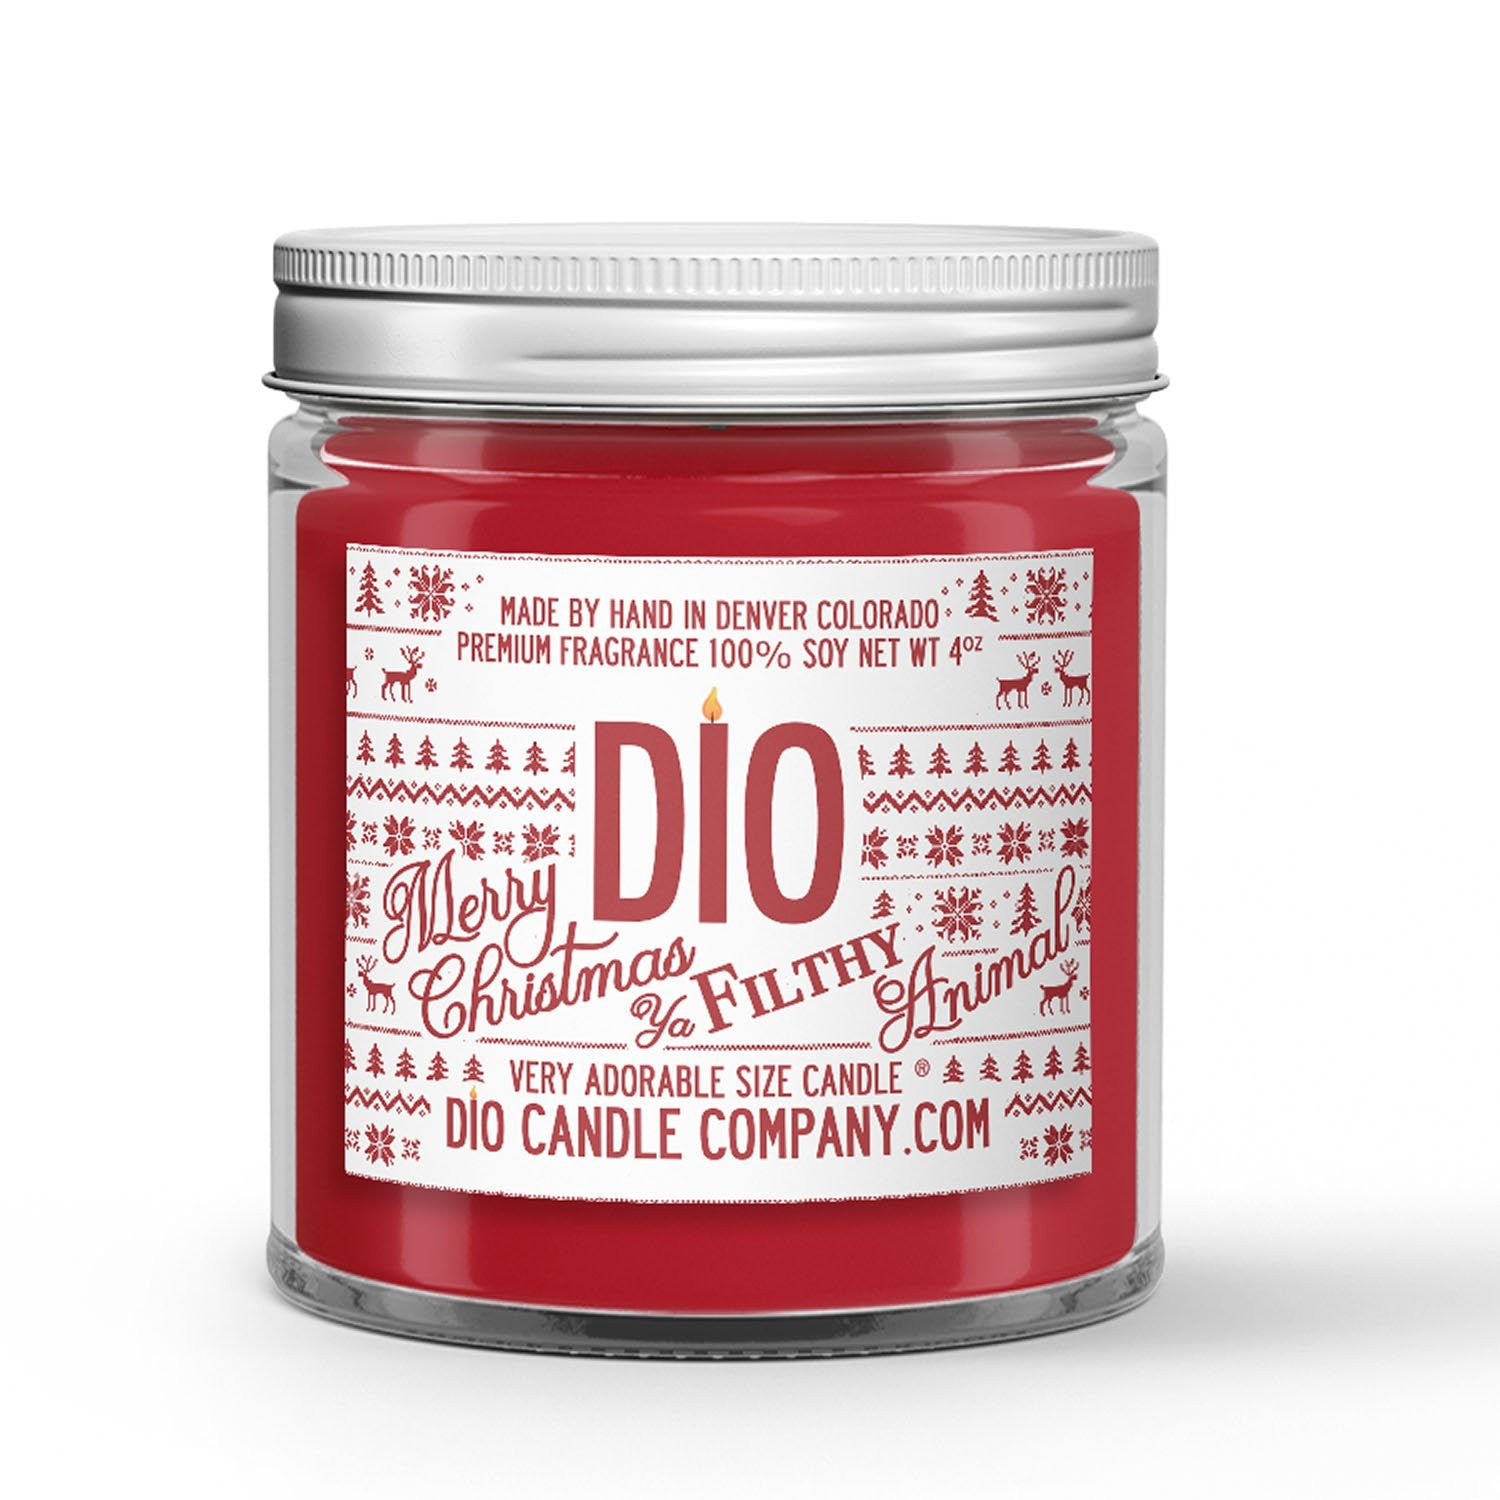 Merry Christmas Ya Filthy Animal Candle - Christmas Tree - Orange Spice - 4oz Very Adorable Size Candle® - Dio Candle Company